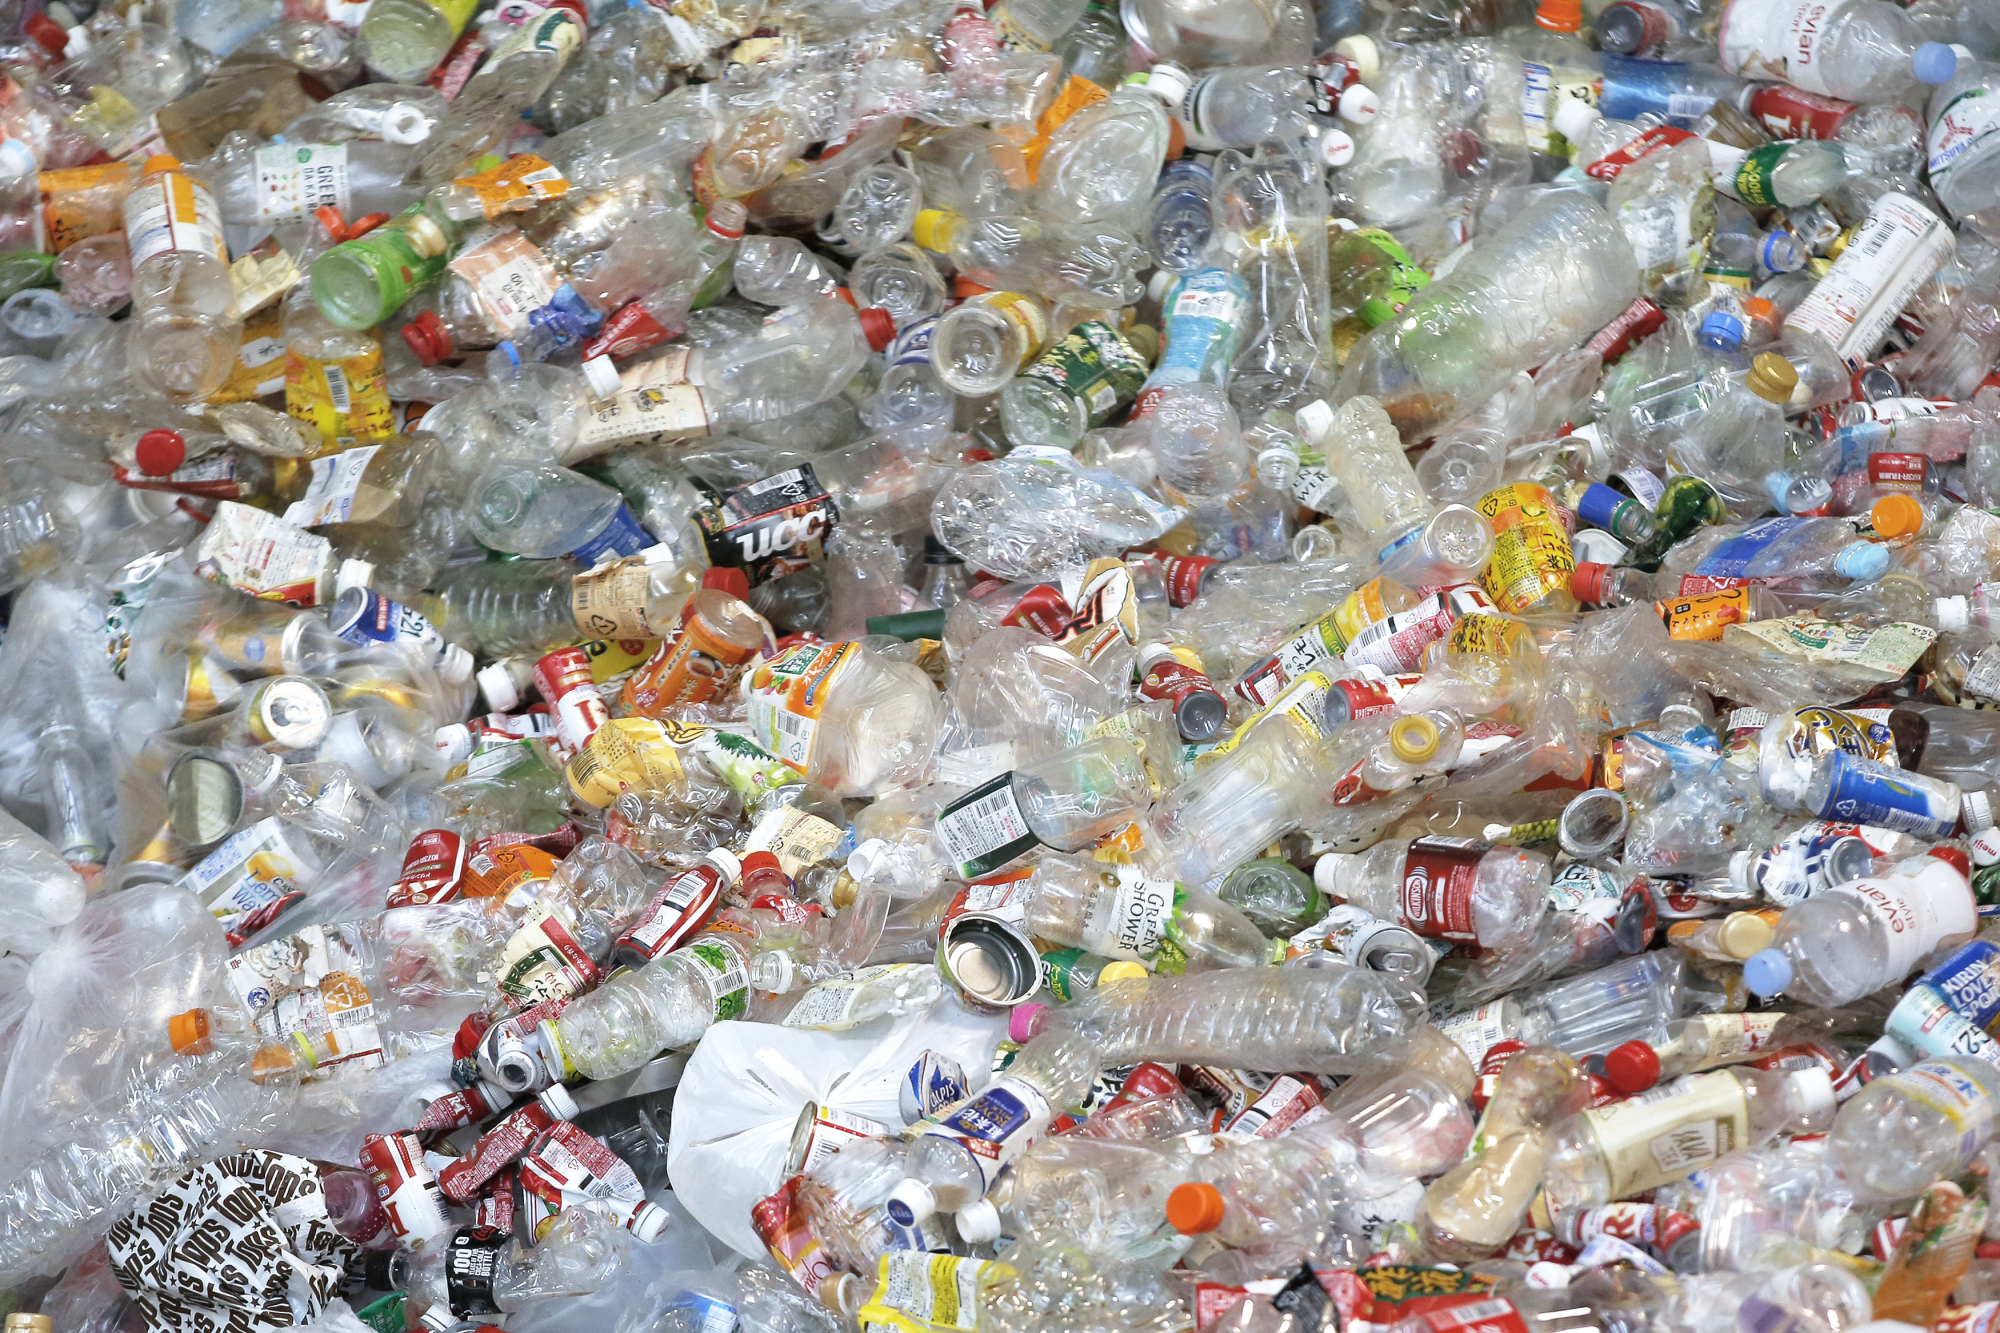 Unsorted plastic bottles pile up at a recycling center in Kawasaki. The government reportedly plans to ask local governments to deal with the growing amount of industrial plastic waste in Japan after China banned imports of such materials. | BLOOMBERG